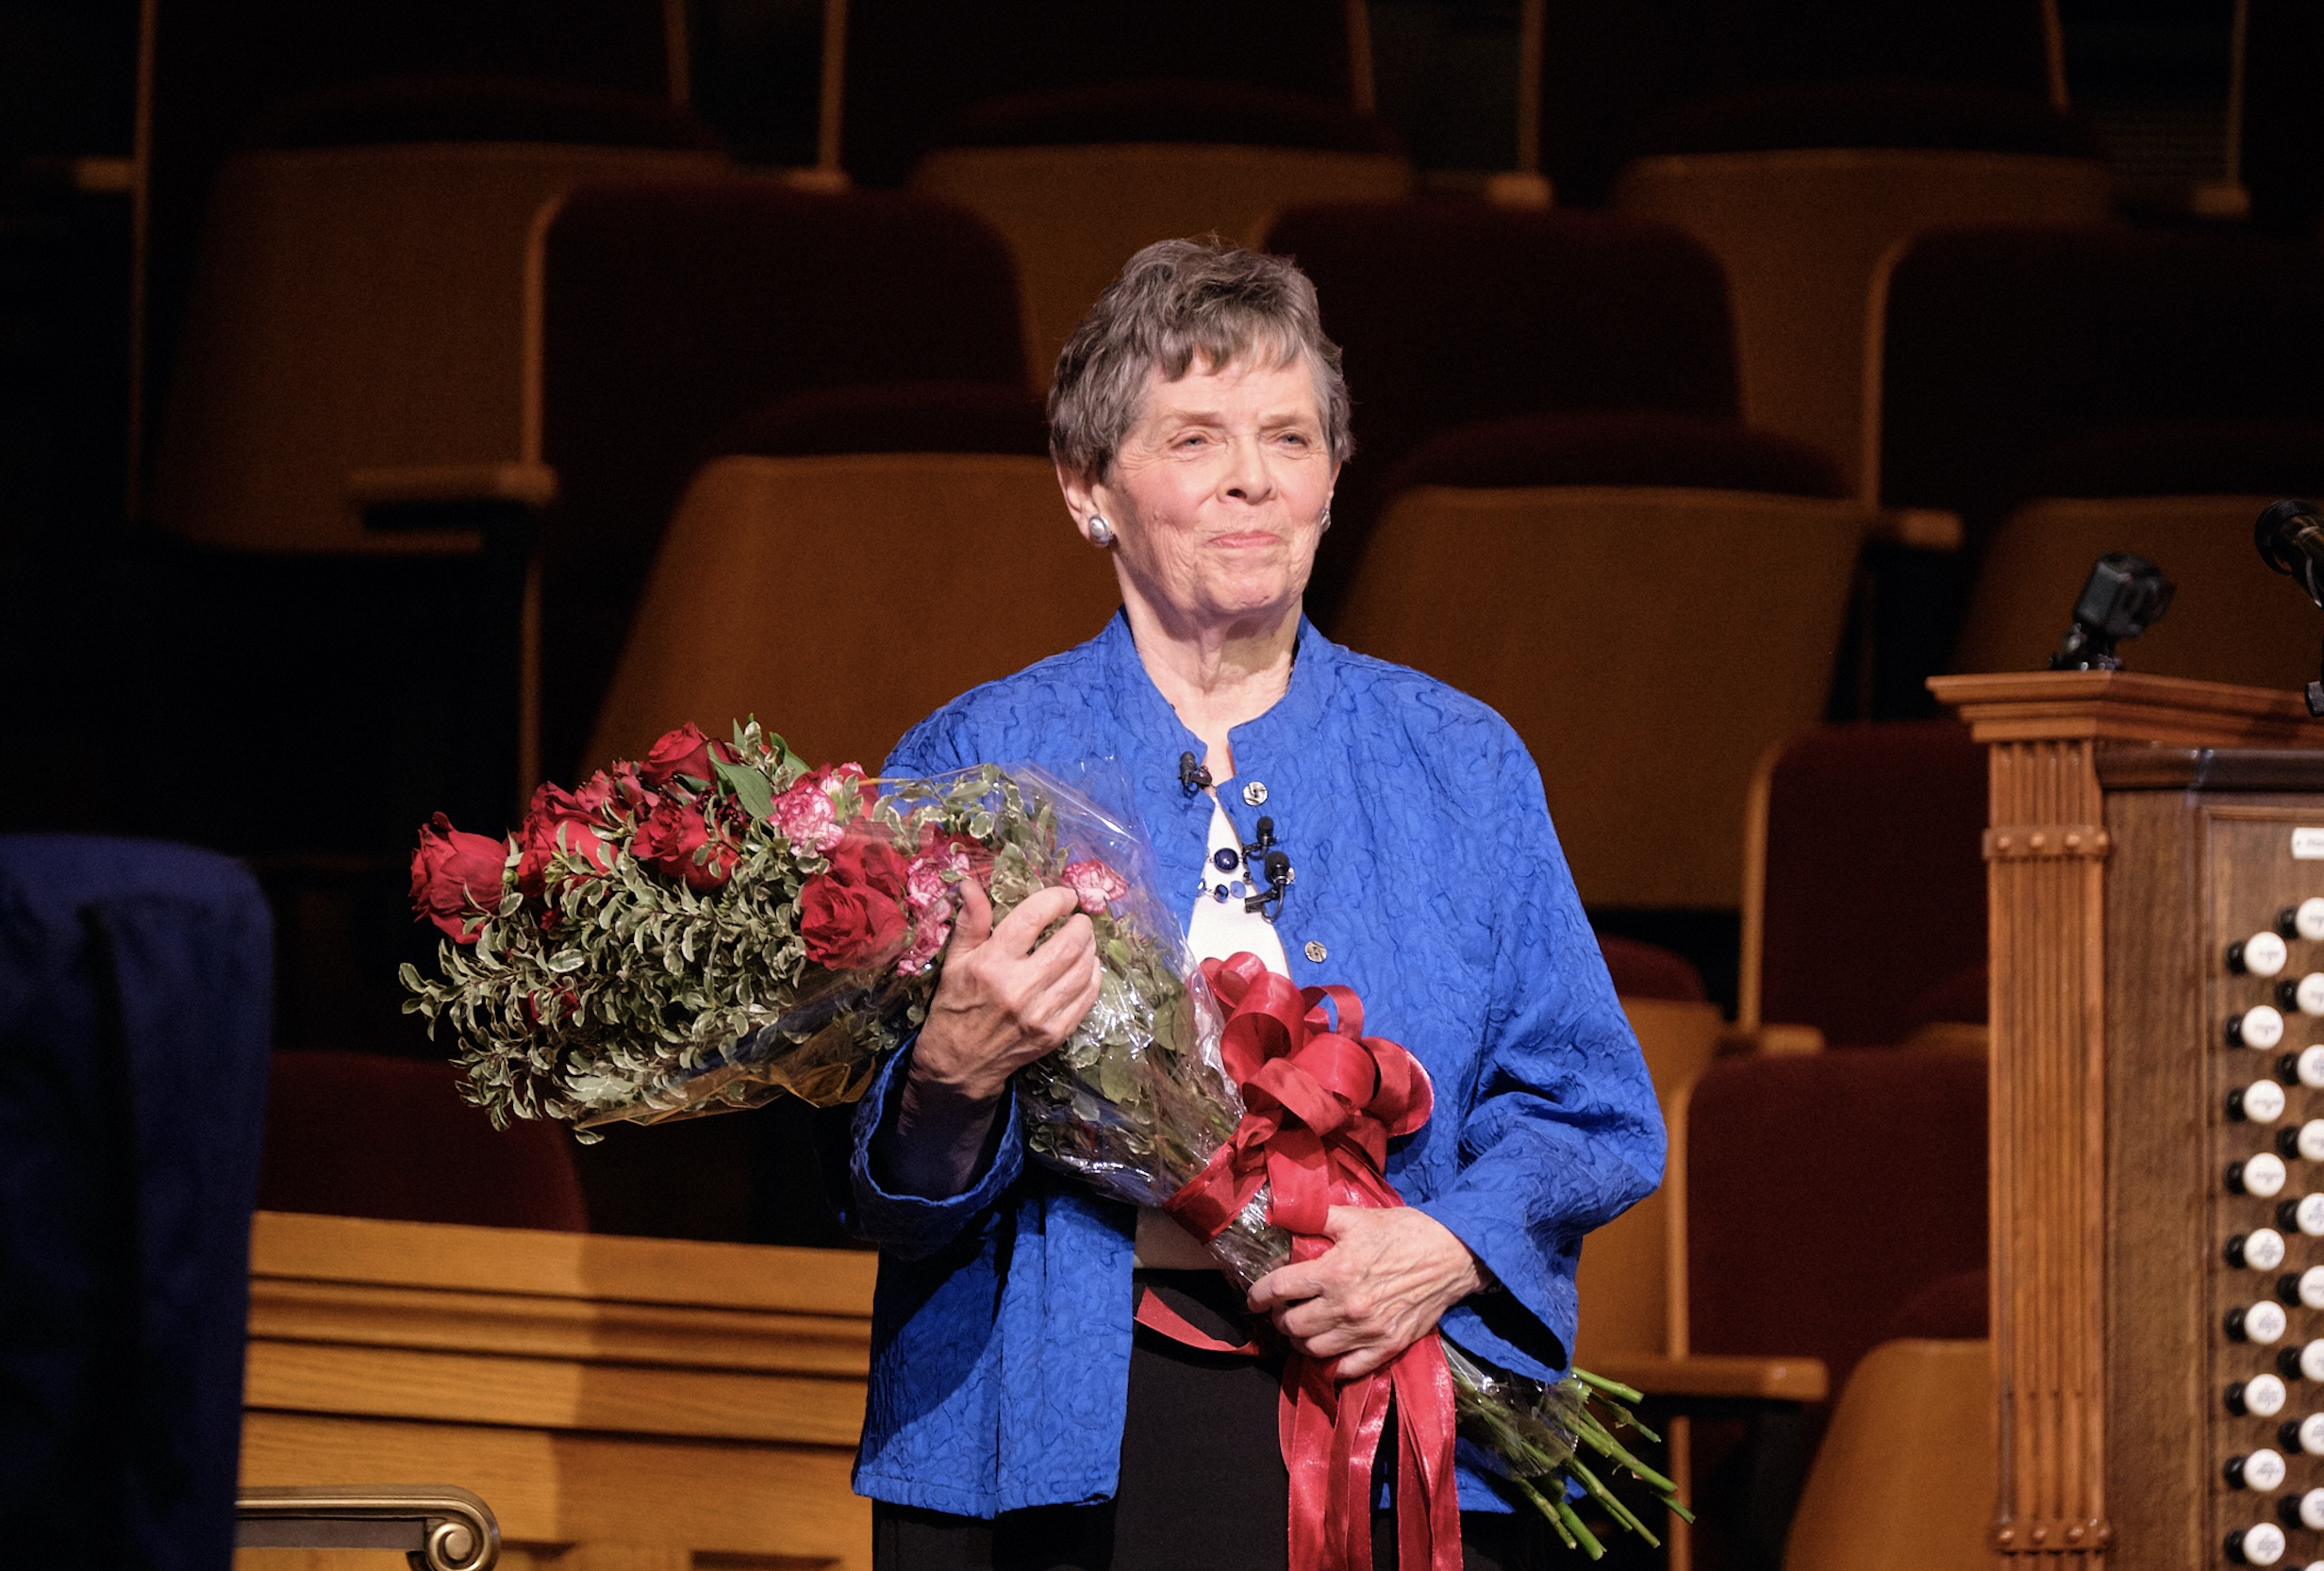 Retiring Temple Square organist Bonnie Goodliffe, accepts a bouquet of red roses at the Salt Lake Tabernacle after 40 years of service on Monday, Oct. 21, 2019.